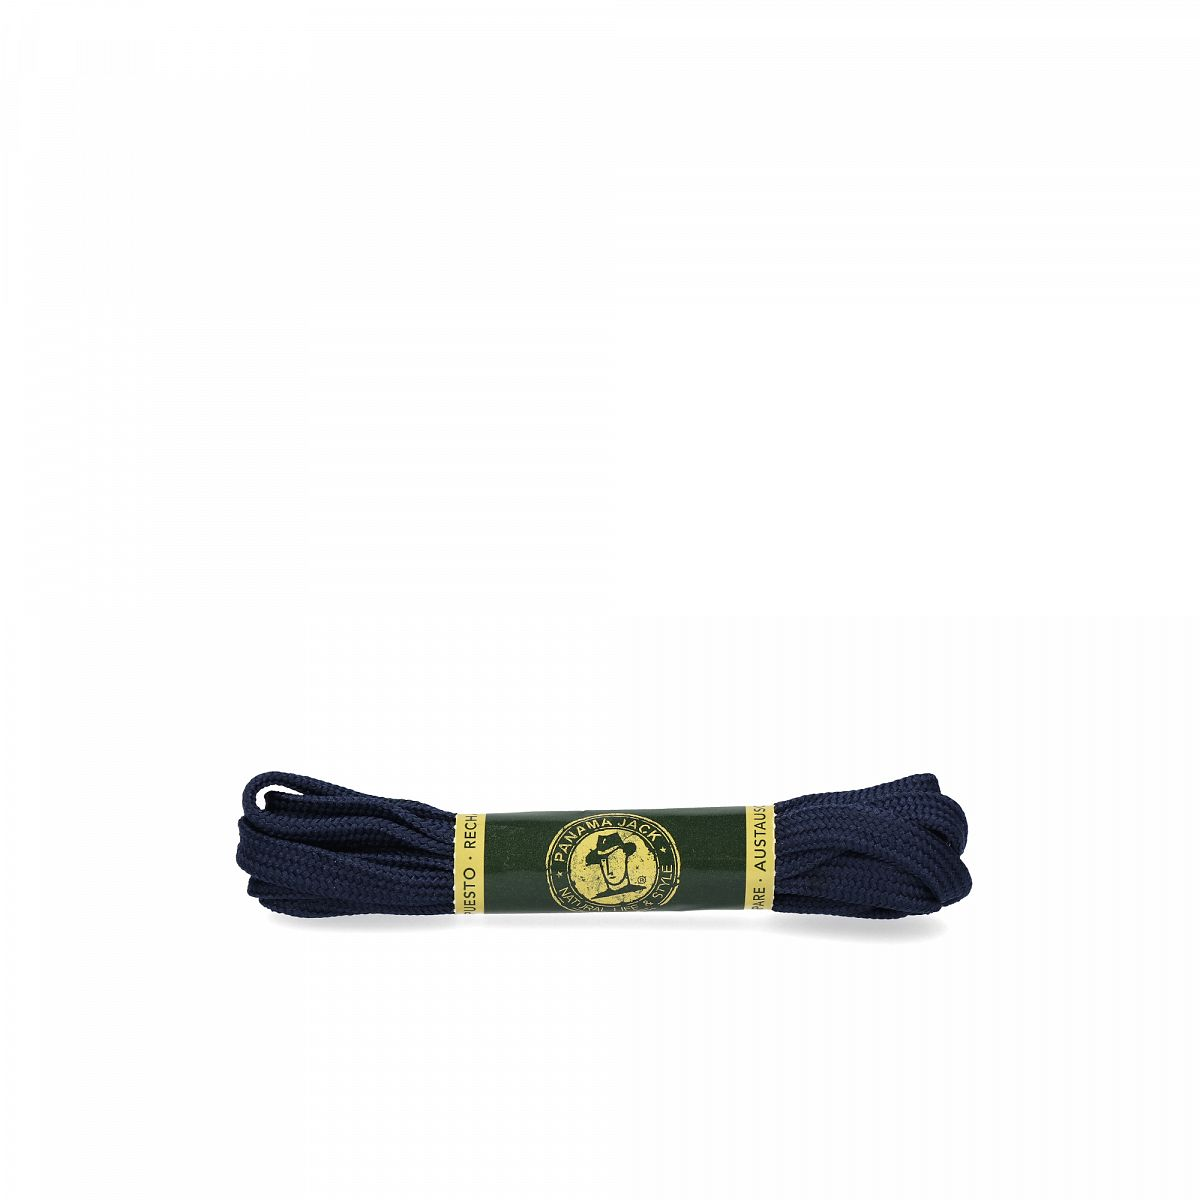 Shoelaces 125 Cm in navy Navy blue Poliester